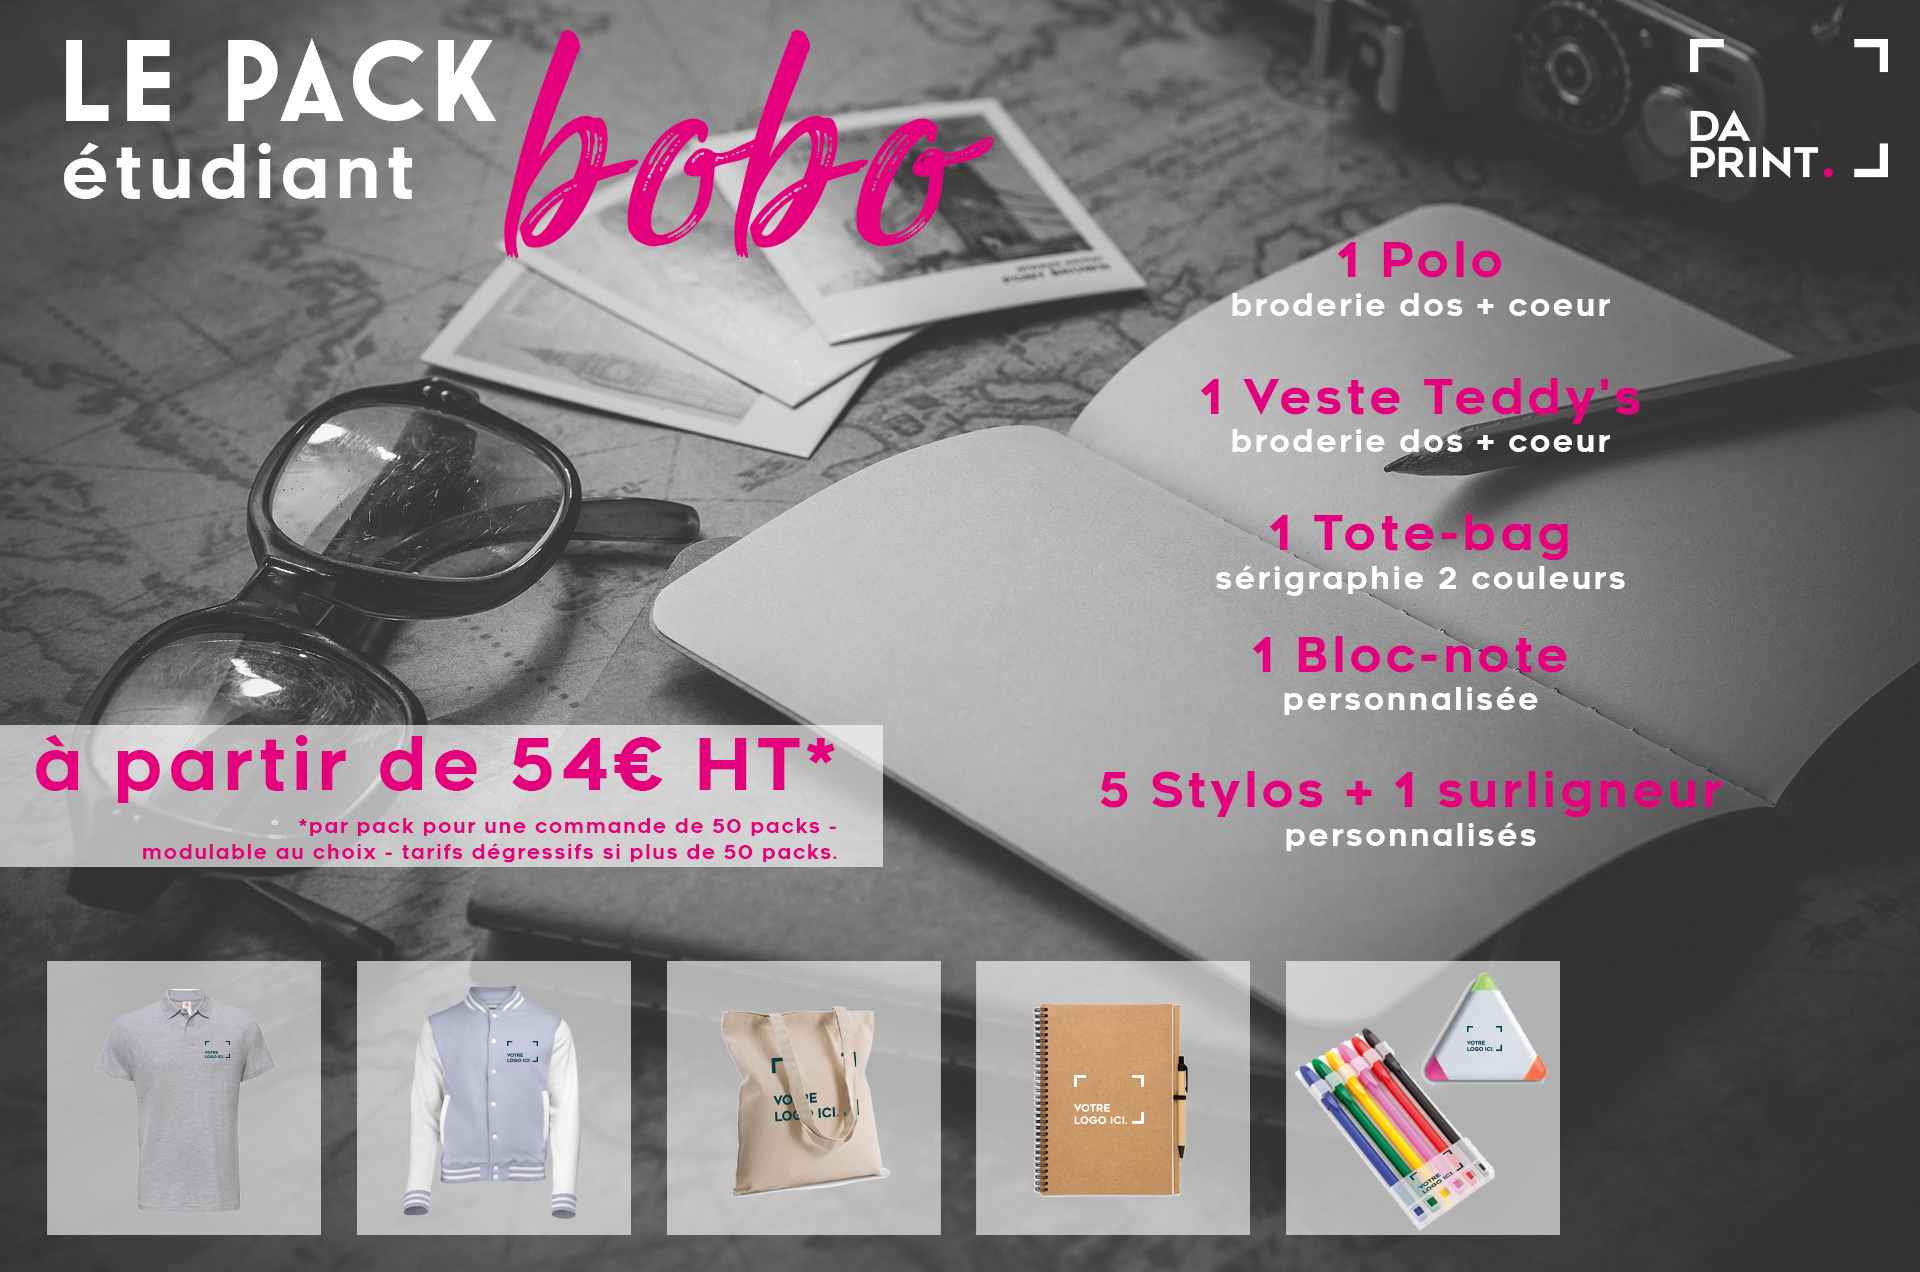 vetements-etudiants-pack-bobo-daprint